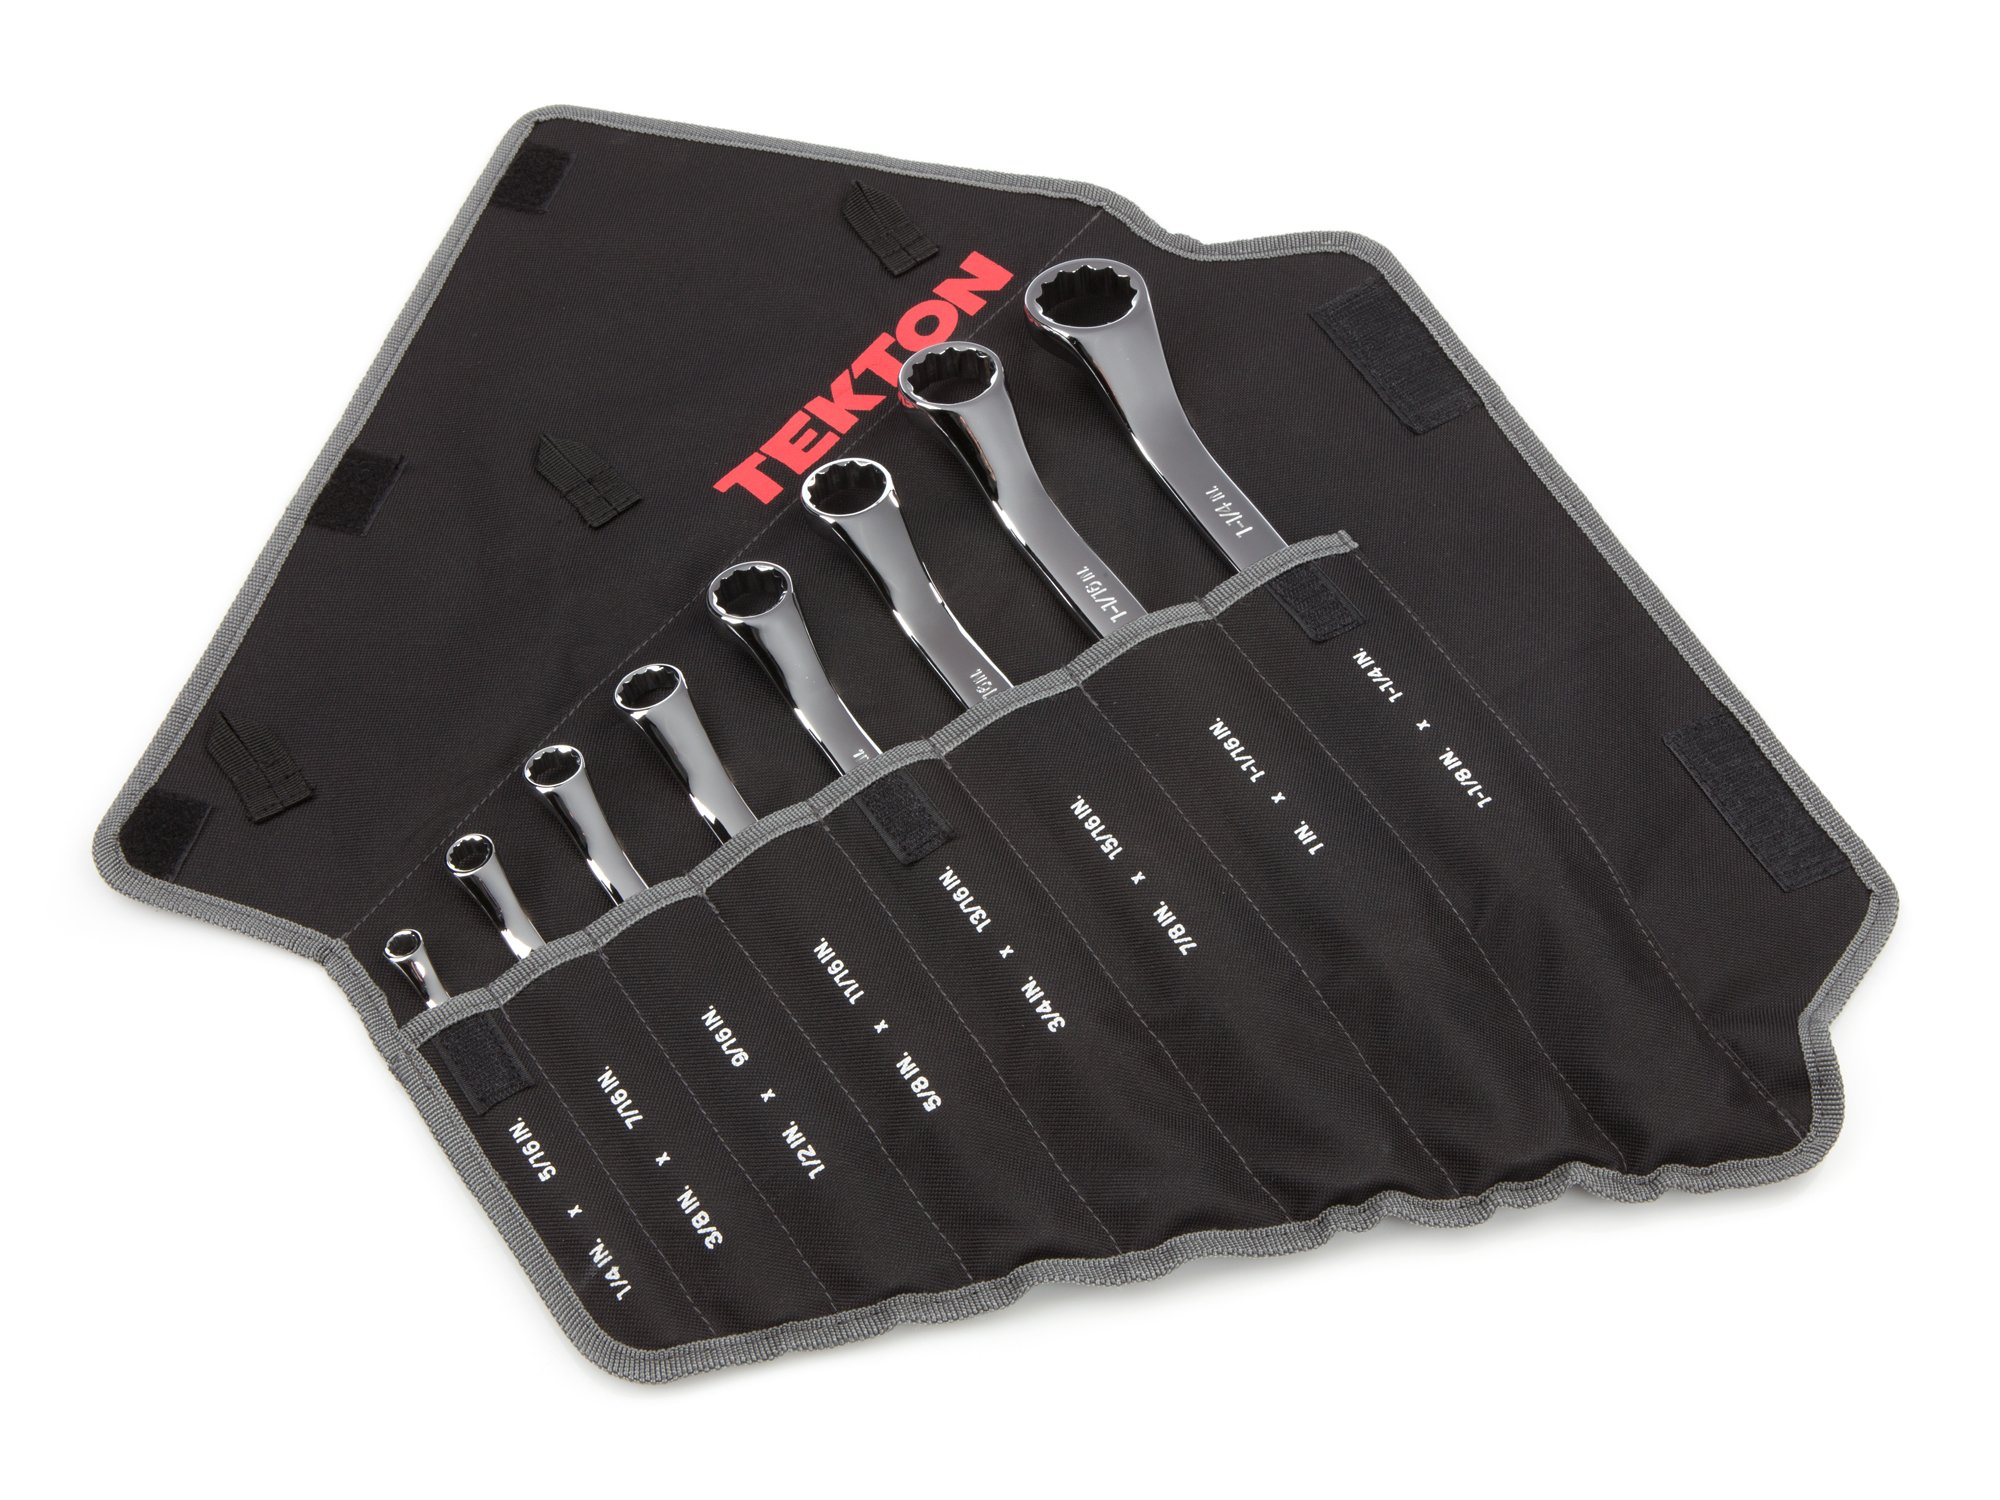 TEKTON 45-Degree Offset Box End Wrench Set with Roll-up Storage Pouch, Inch, 1/4-Inch - 1-1/4-Inch, 8-Piece | WBE23508